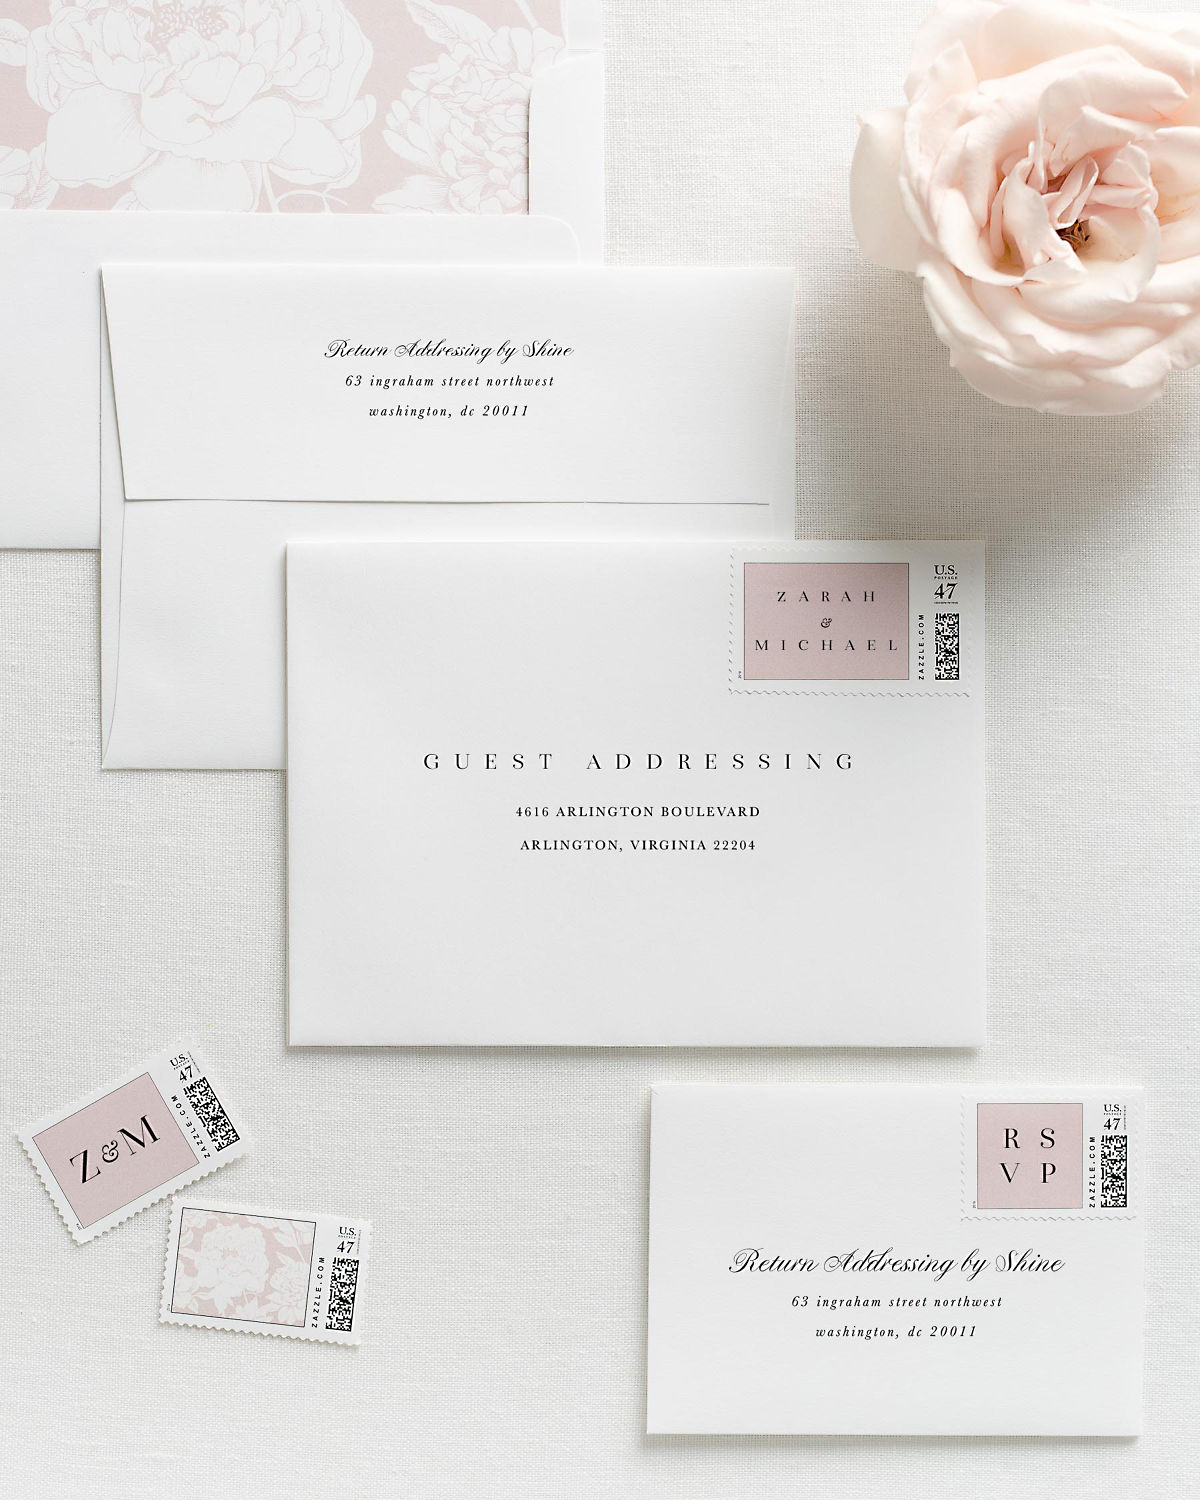 guest addressed wedding envelopes with custom stamps